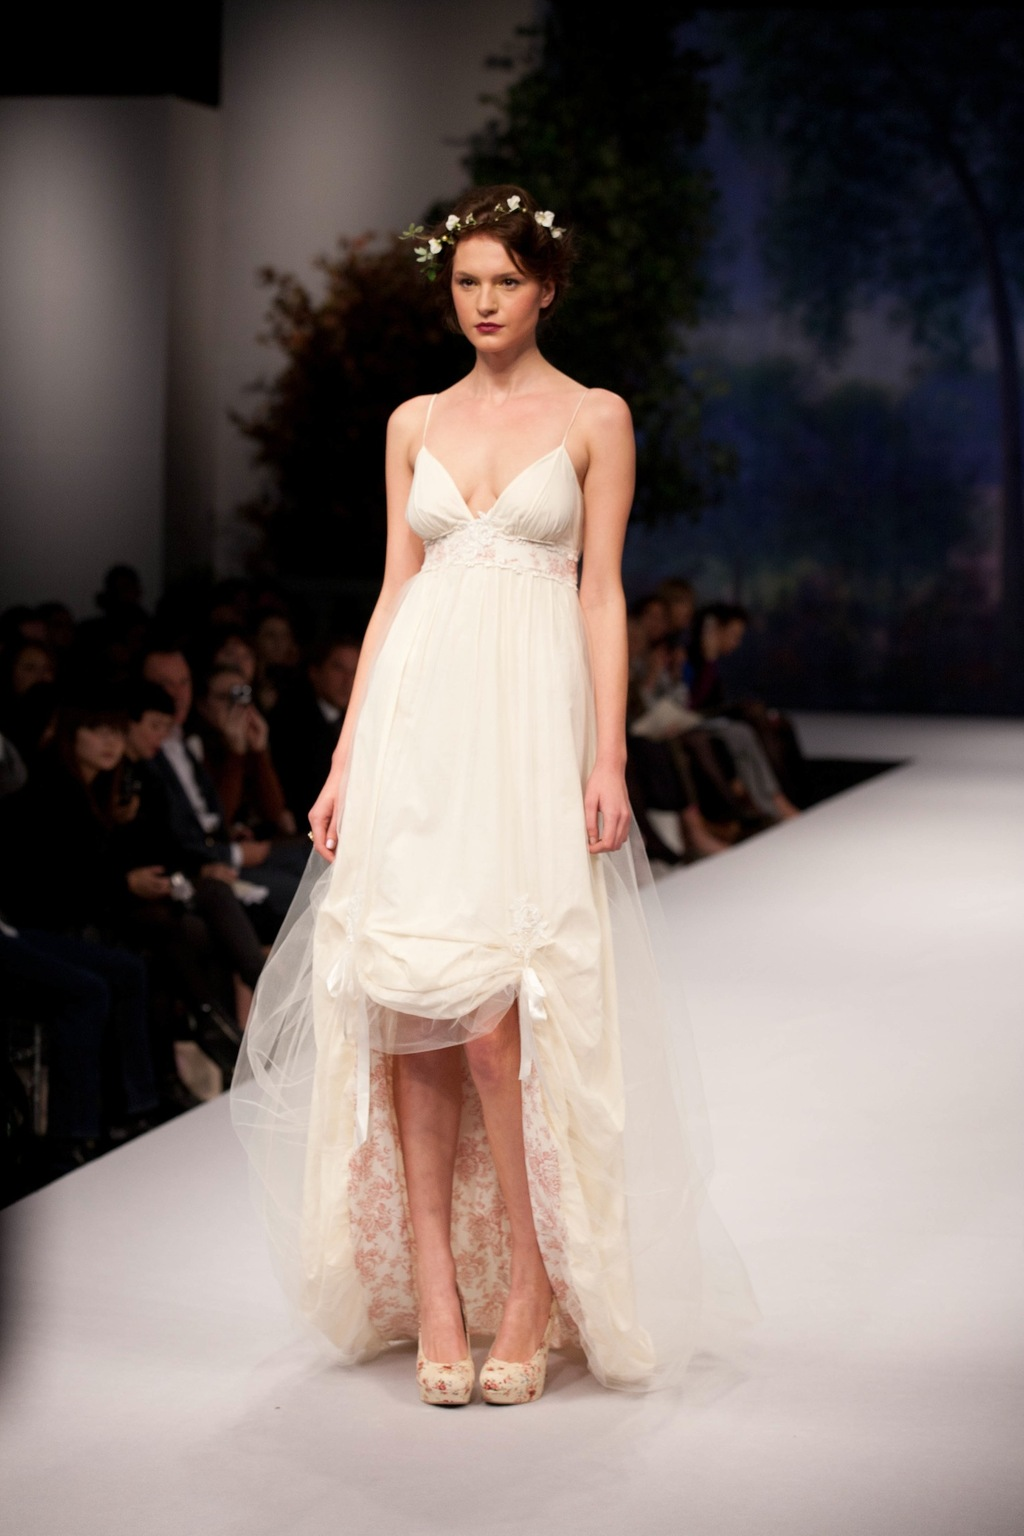 Spring_2012_wedding_dress_claire_pettibone_amelie.full